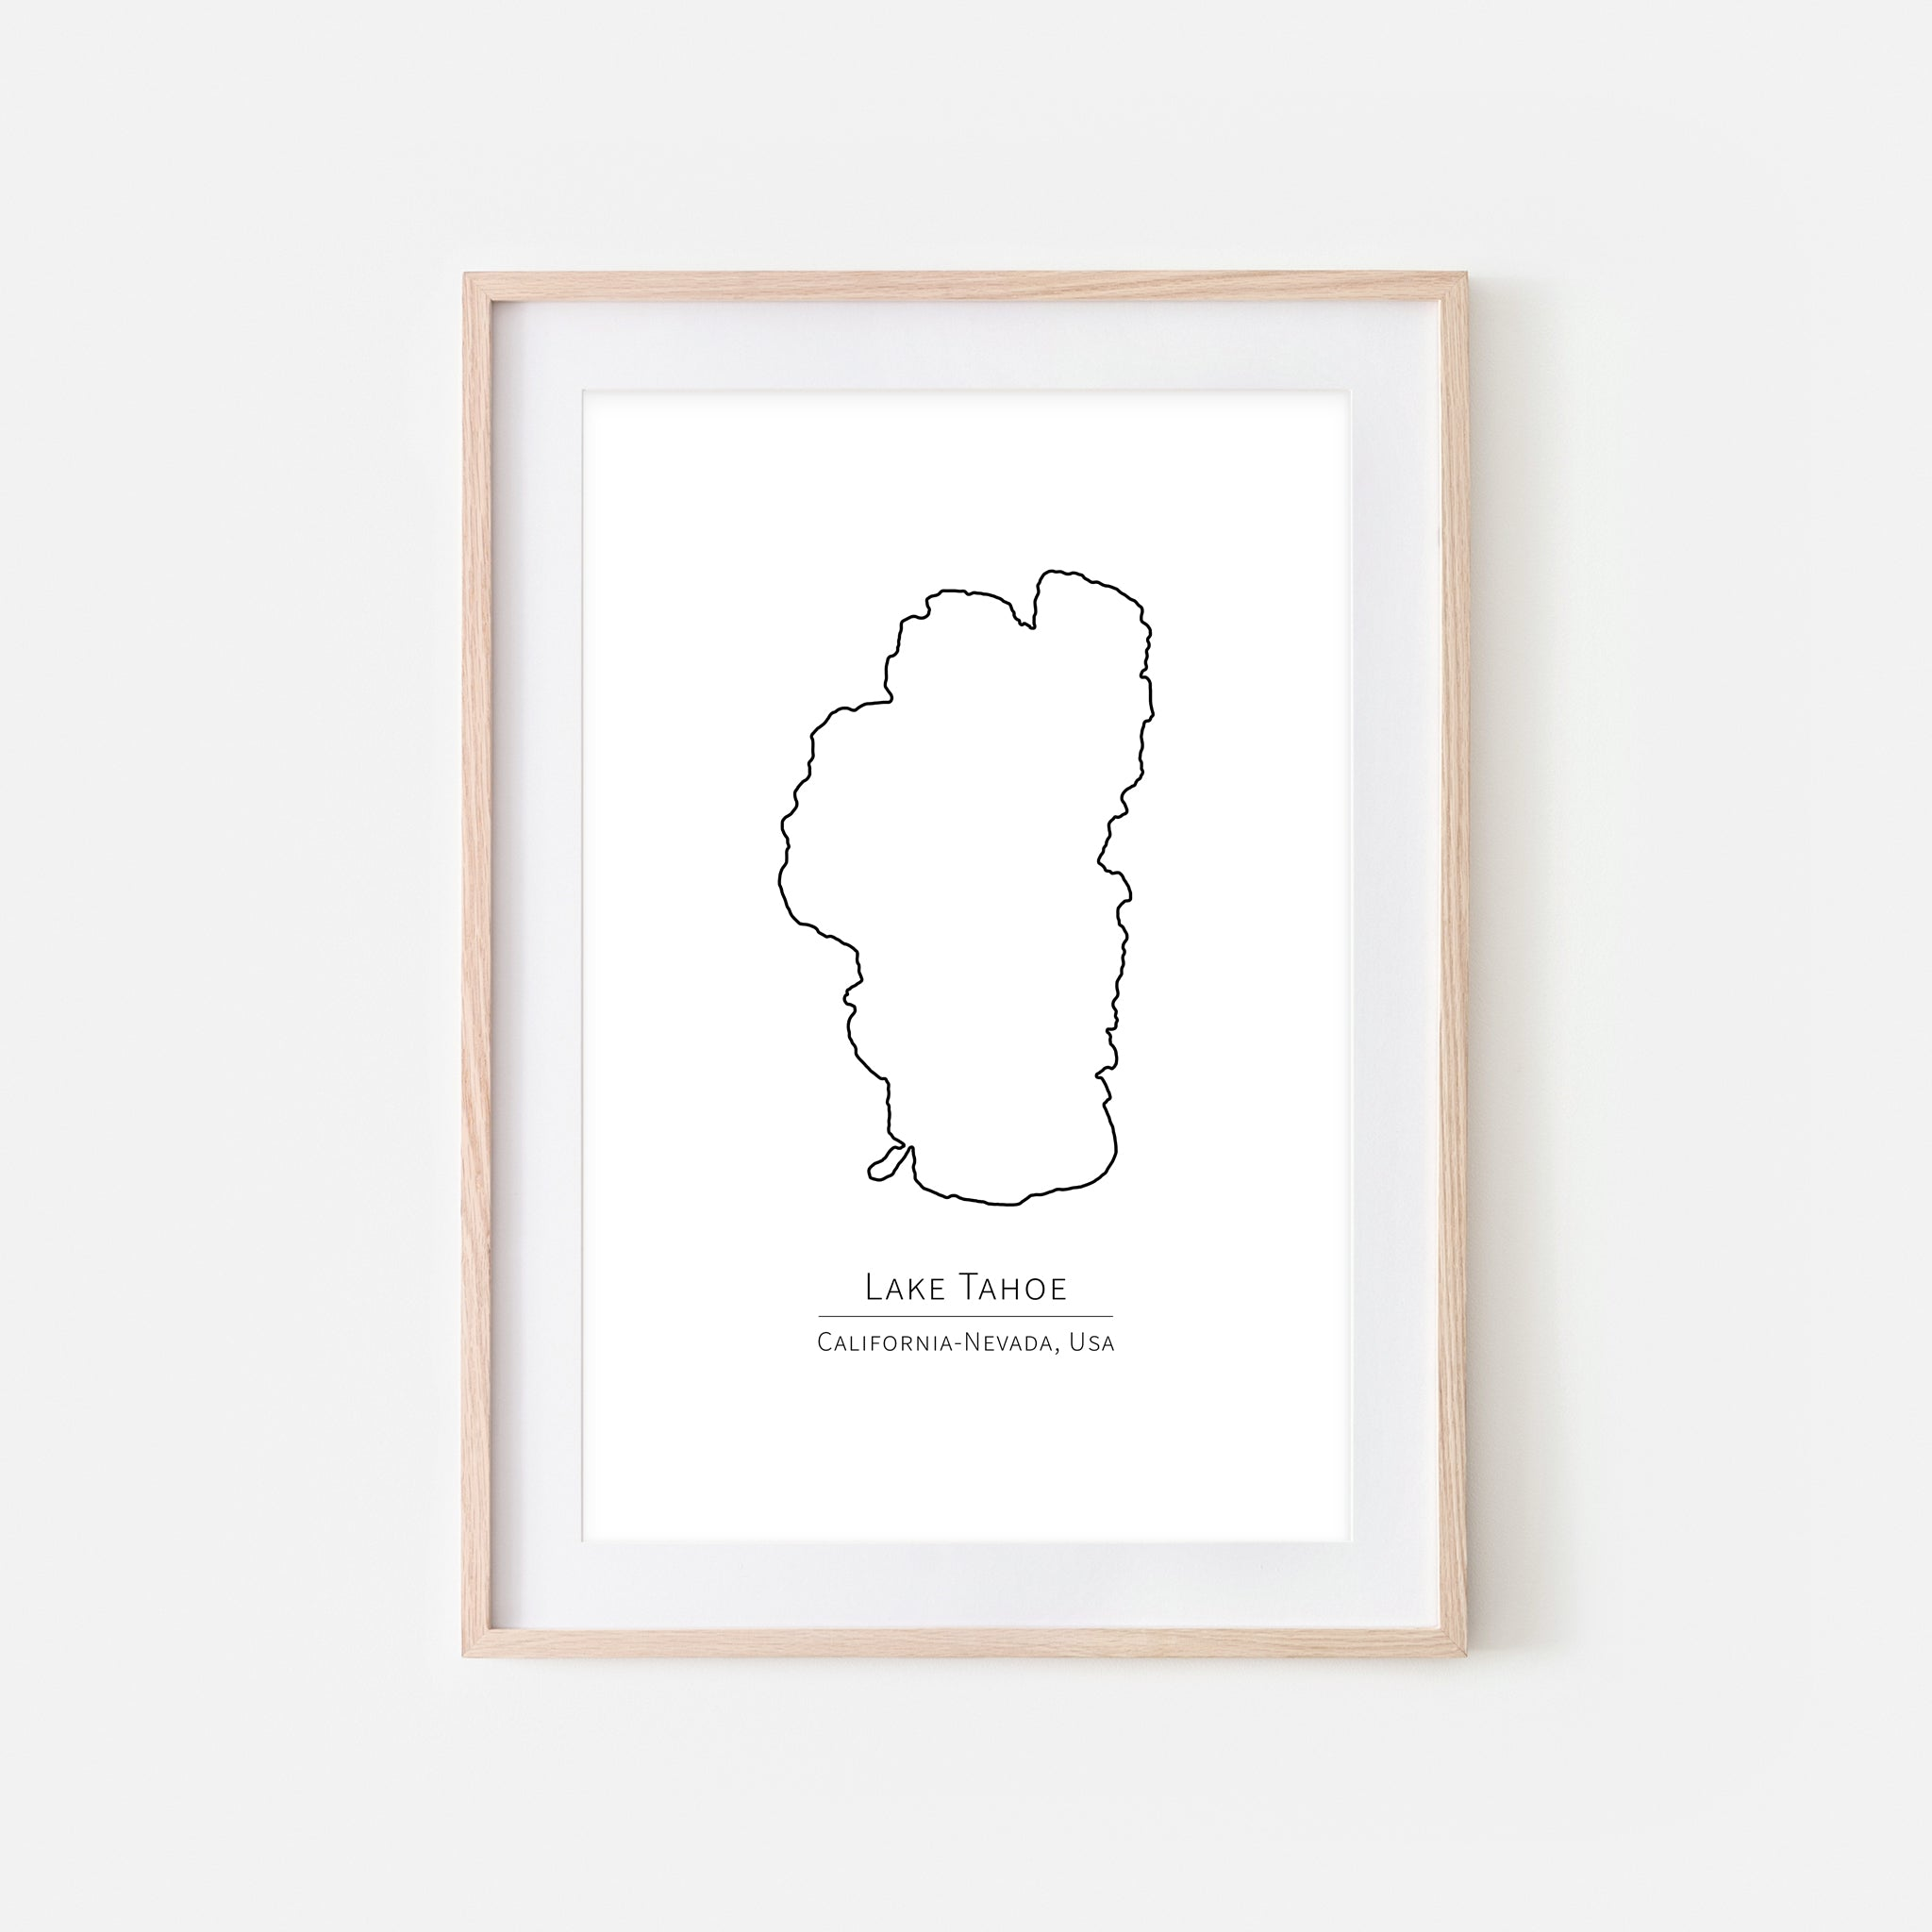 Lake Tahoe California Sierra Nevada Wall Art - Minimalist Map - Lake House Decor - Black and White Print, Poster or Printable Download